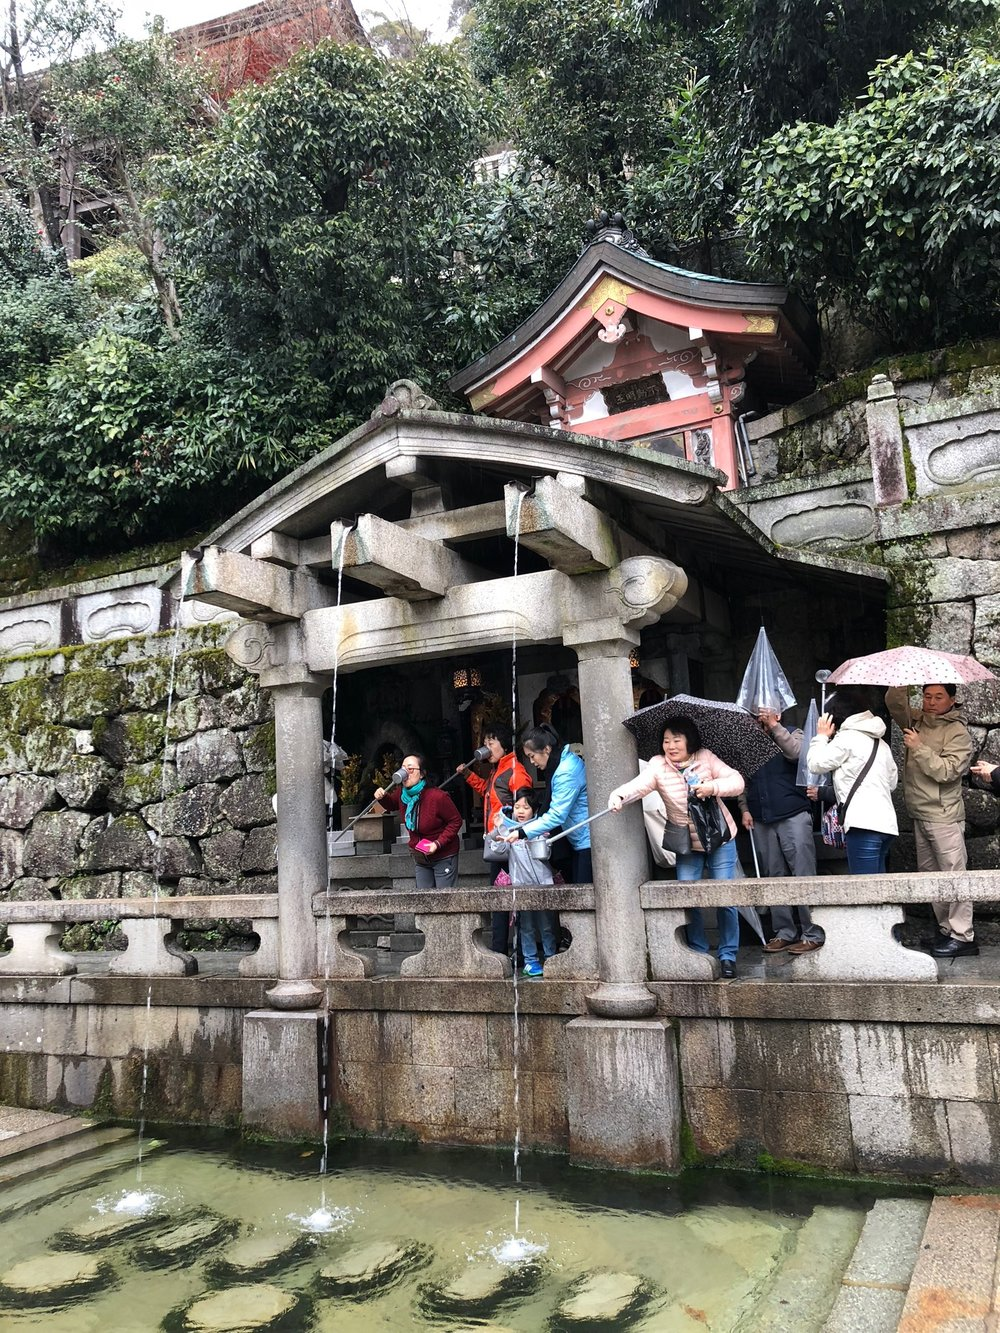 We queued up with everyone else at the Otowa Waterfall, where each stream represents a different form of luck--longevity, success at school and a fortunate love life. With a long line of luck-seekers behind us, we have no idea from which stream we sipped.